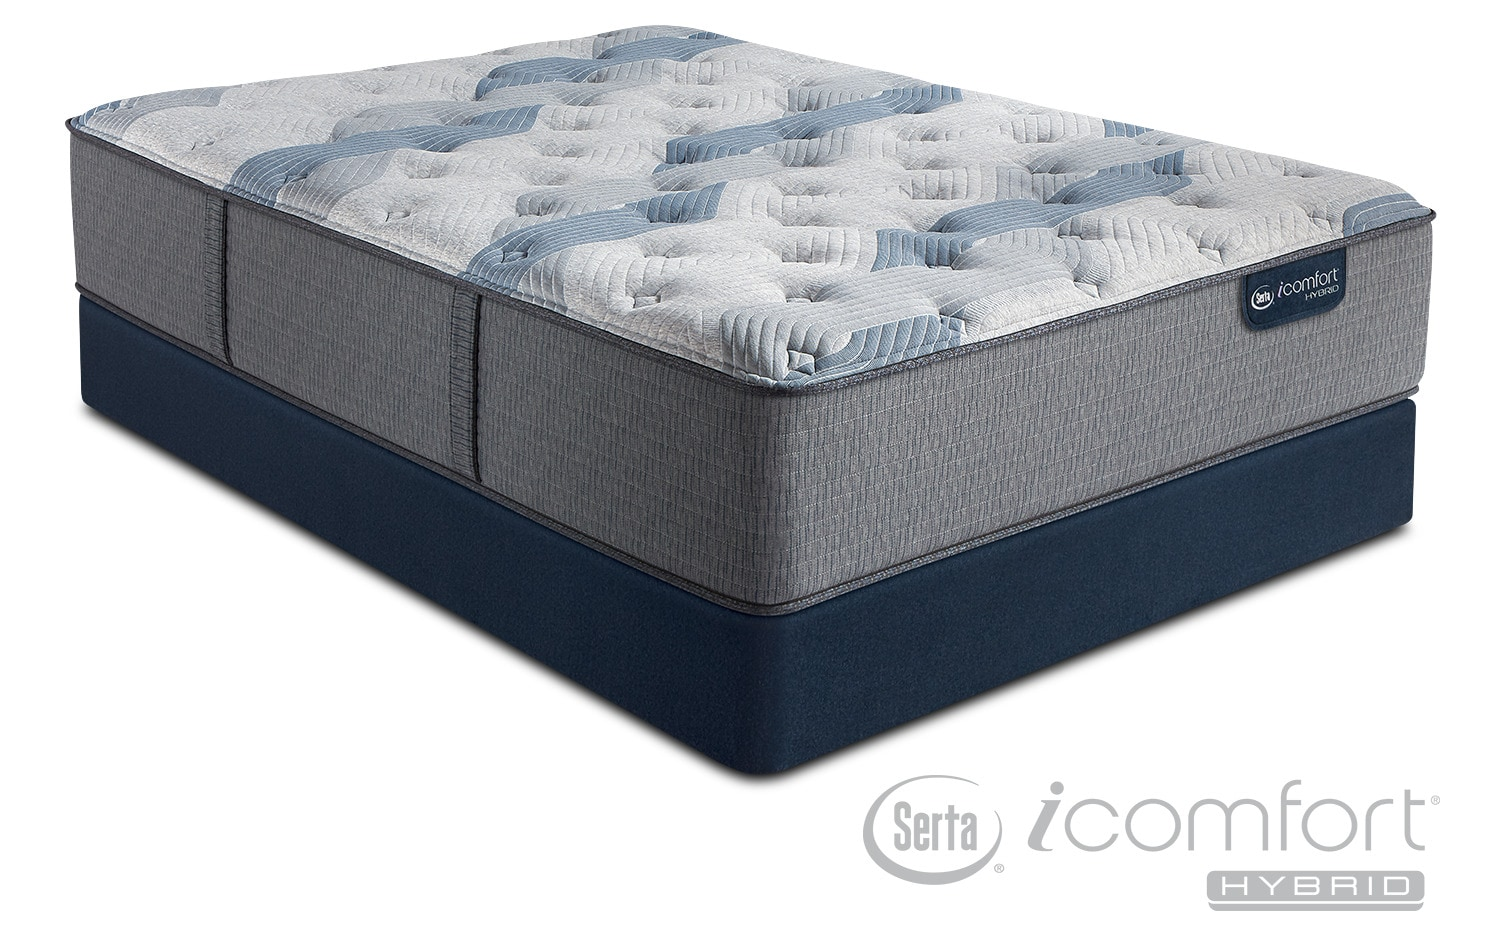 Mattresses And Bedding Blue Fusion 100 Firm Mattress